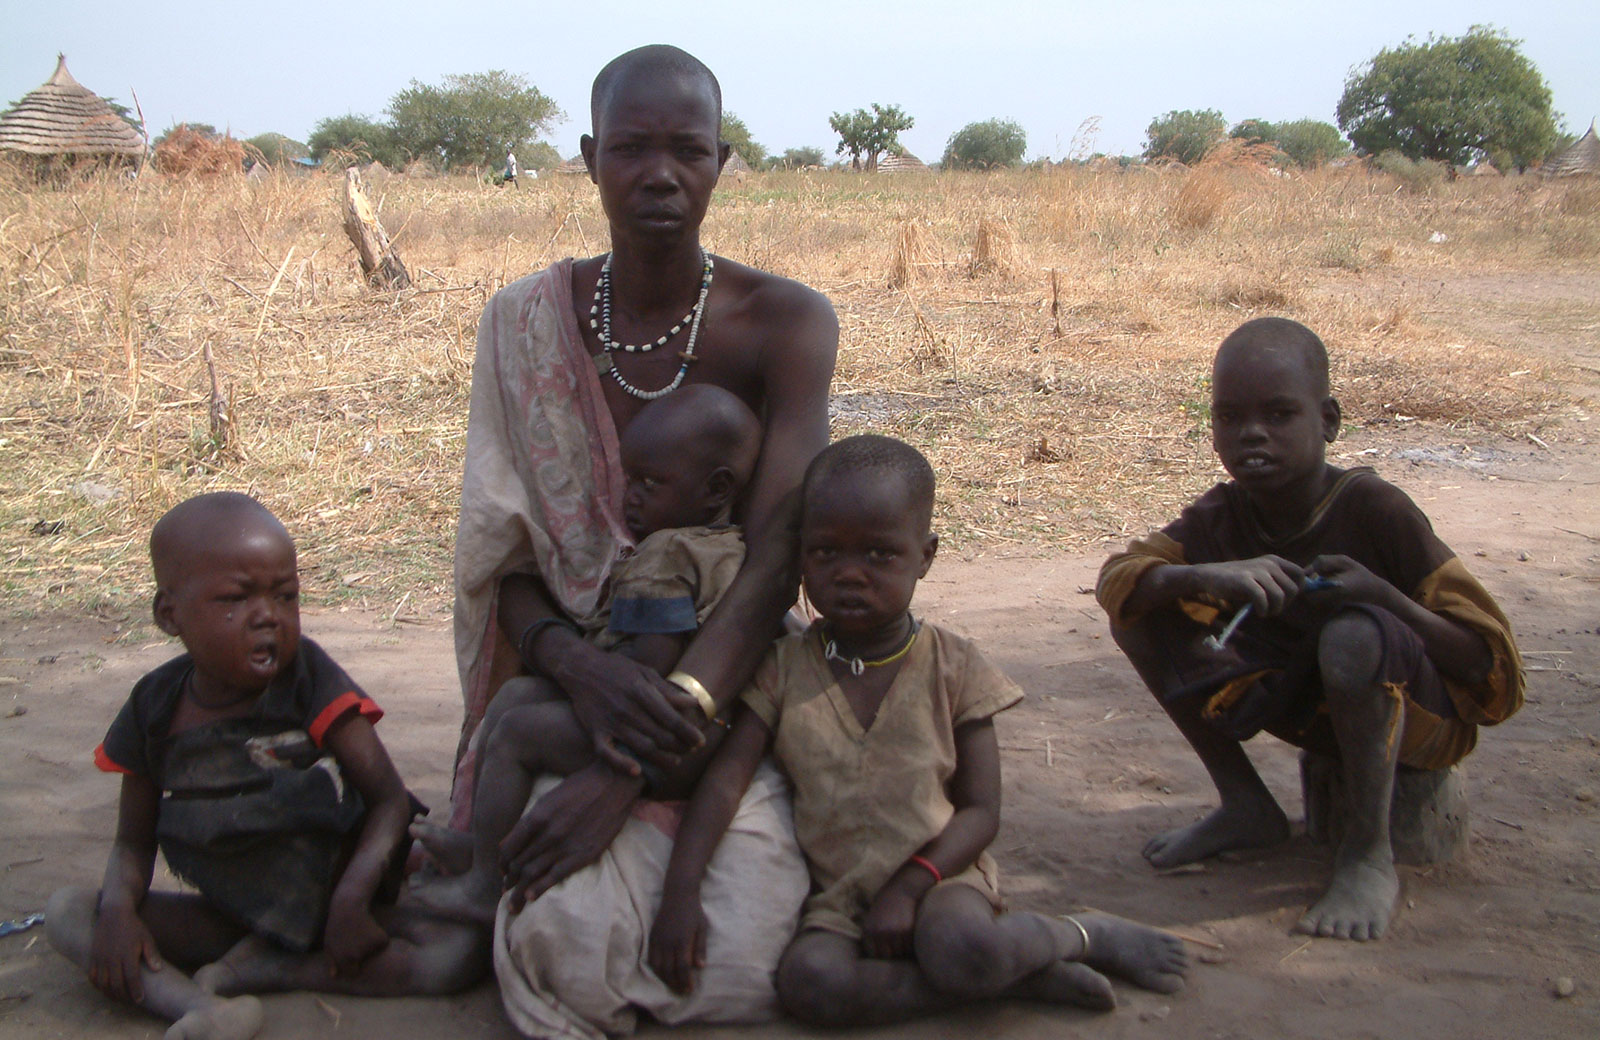 darfur single muslim girls Muslim women in the  the relative status of women and men sudan  i was looking for a little more information on rural culture and the civil war in darfur also.